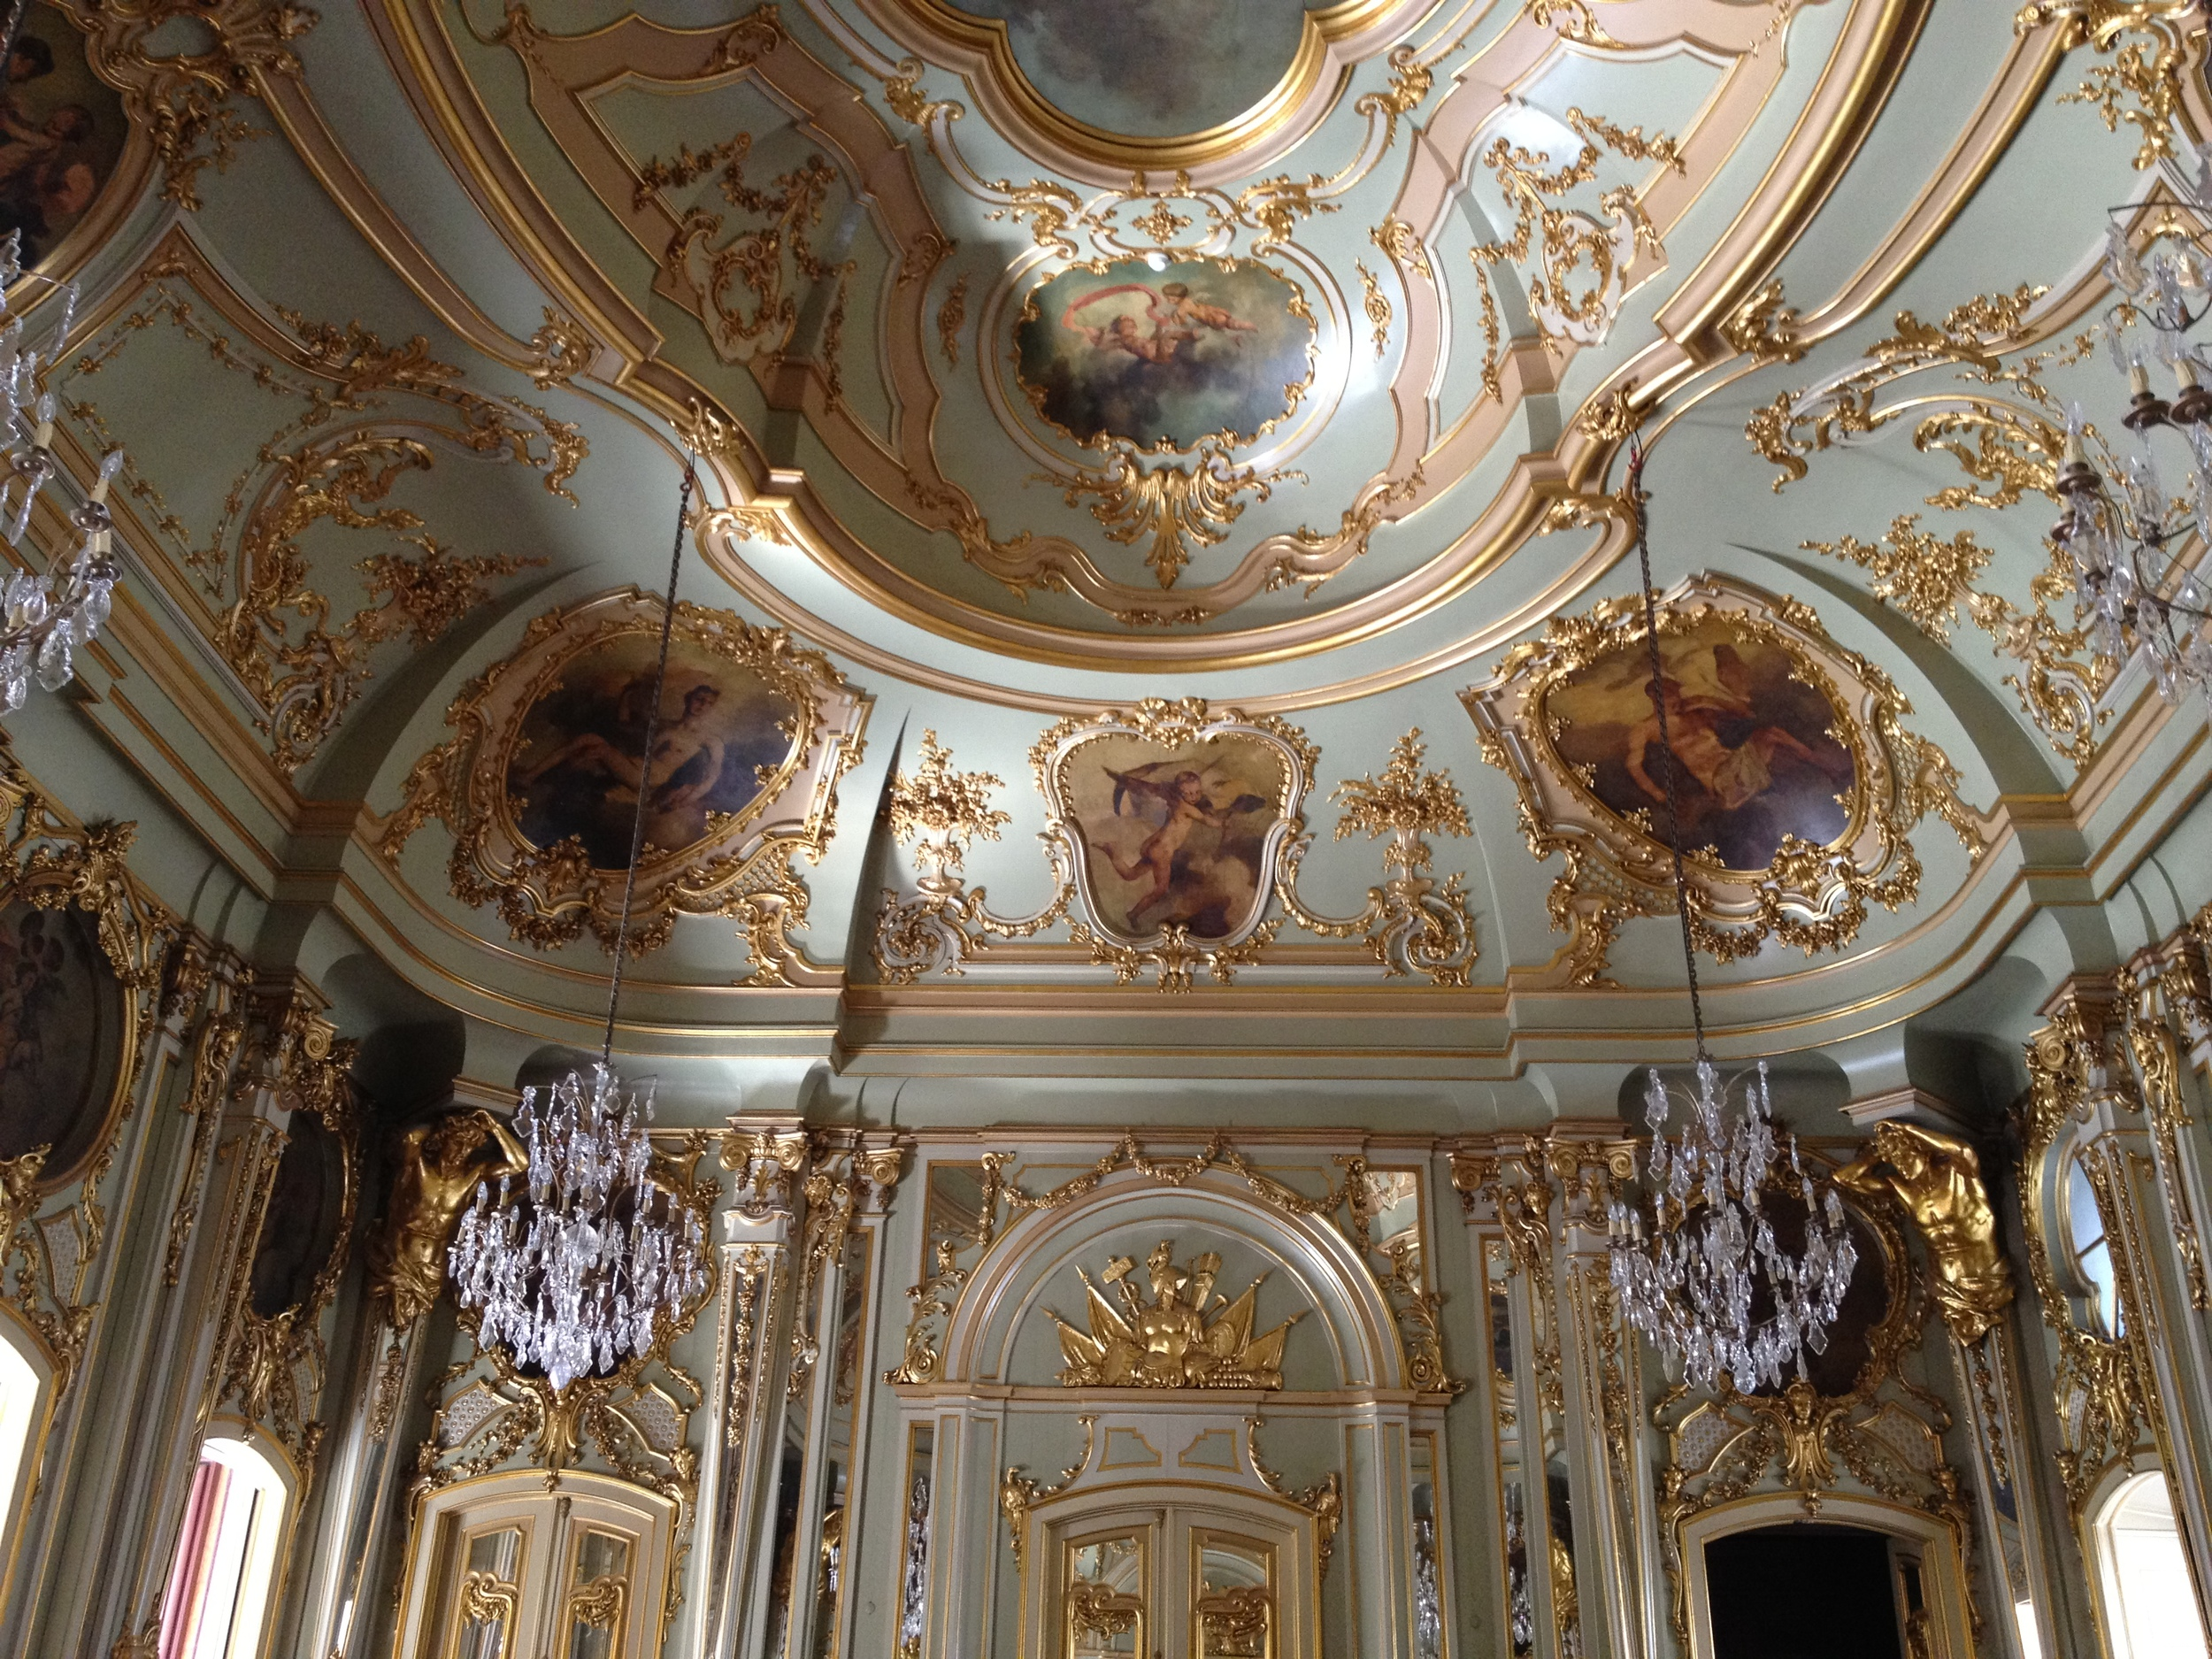 TheSoft pastels of the paint work contrast to the gilded frames and organic motifs of the decorative works. There were mirrors on every wall. When the afternoon sun came through the balcony doors, the entire room was bathed in a really soft golden glow. Gorgeous!